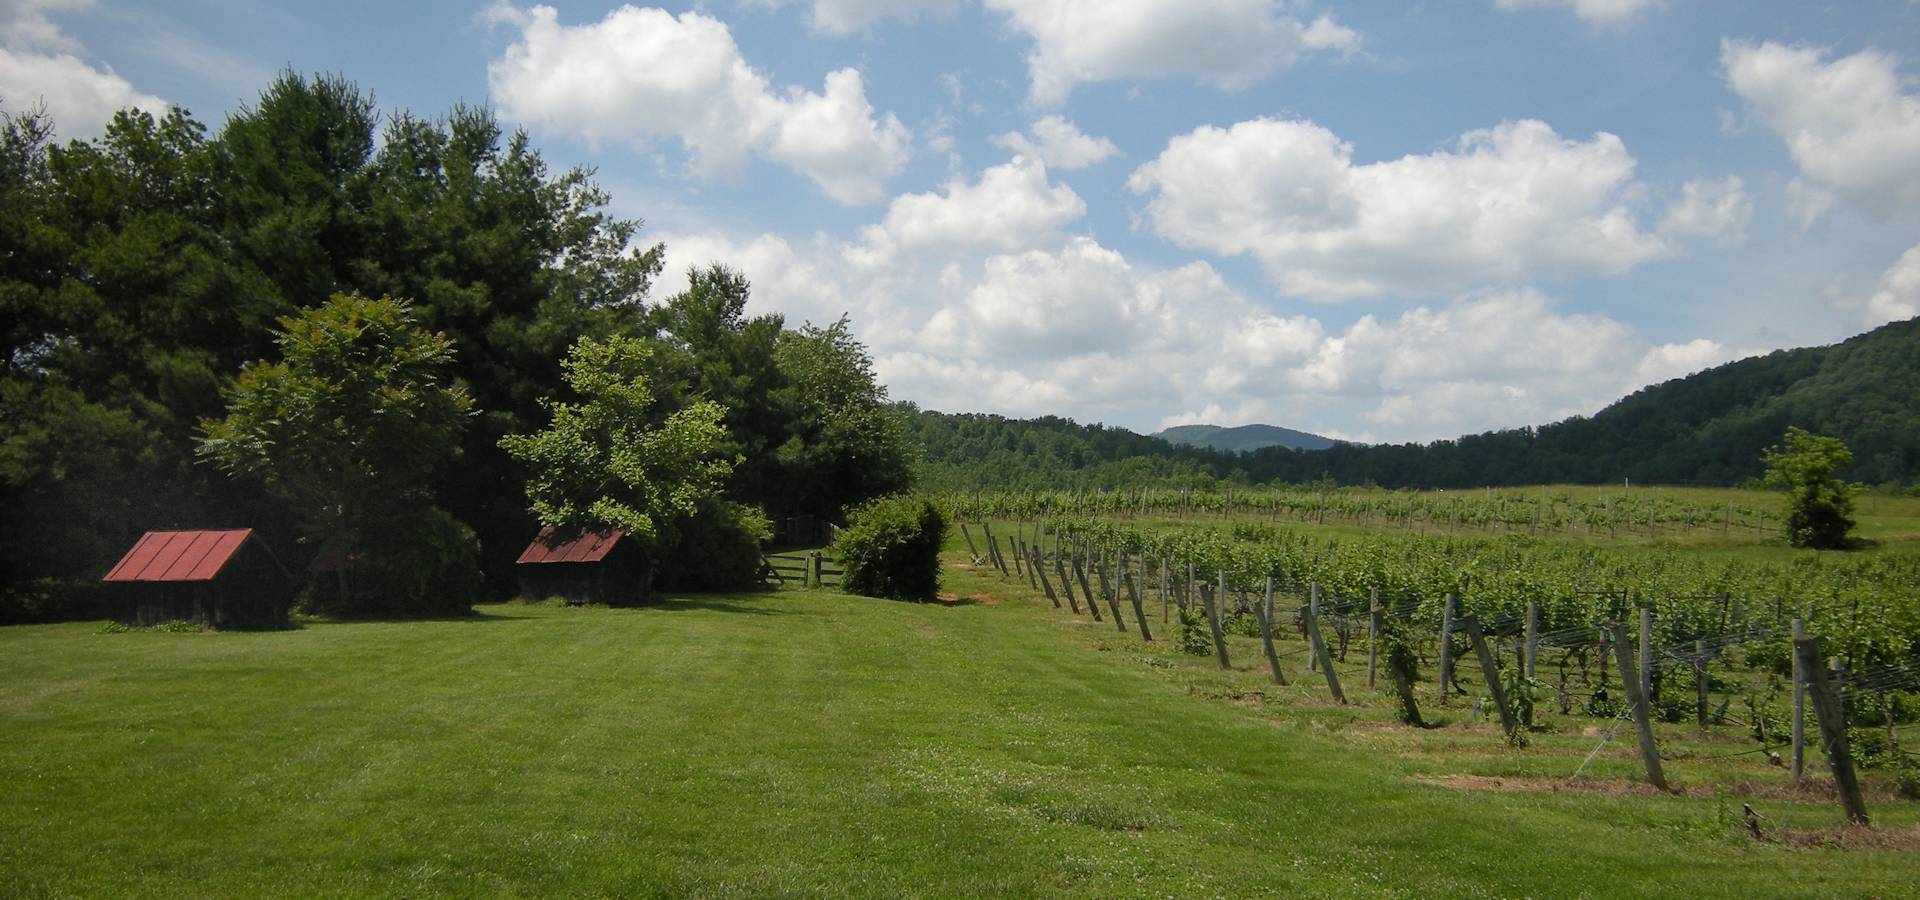 Sharp Rock Vineyards